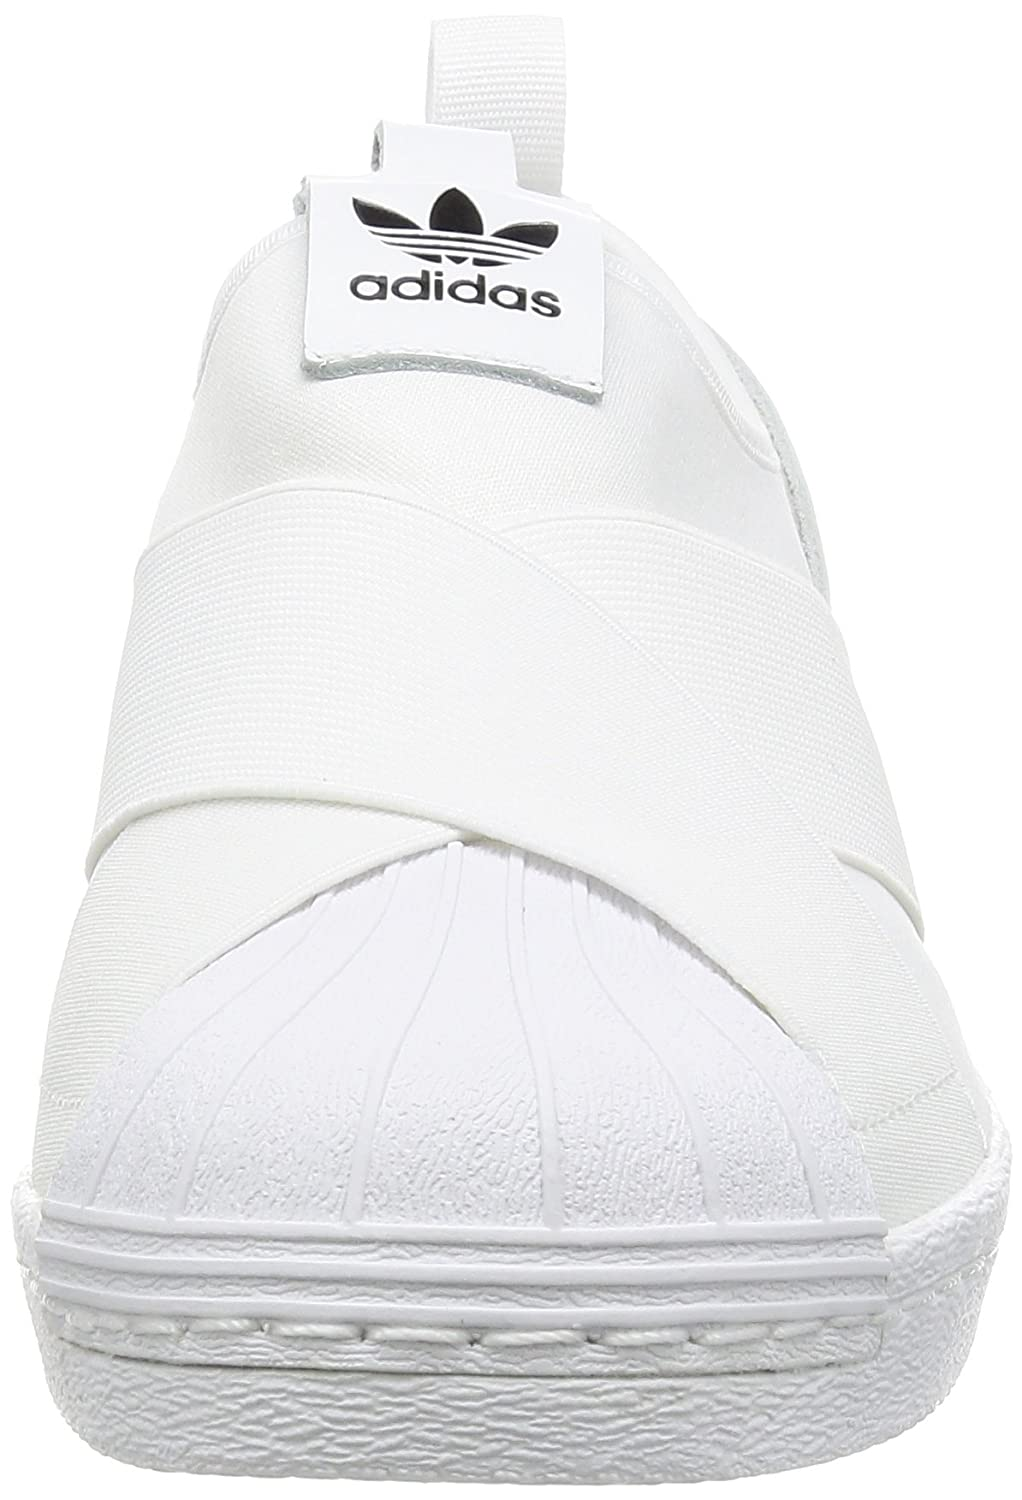 adidas Superstar Slip On, Zapatillas de Deporte para Mujer, Blanco FTWR White/Core Black, 37.5 EU: Amazon.es: Zapatos y complementos